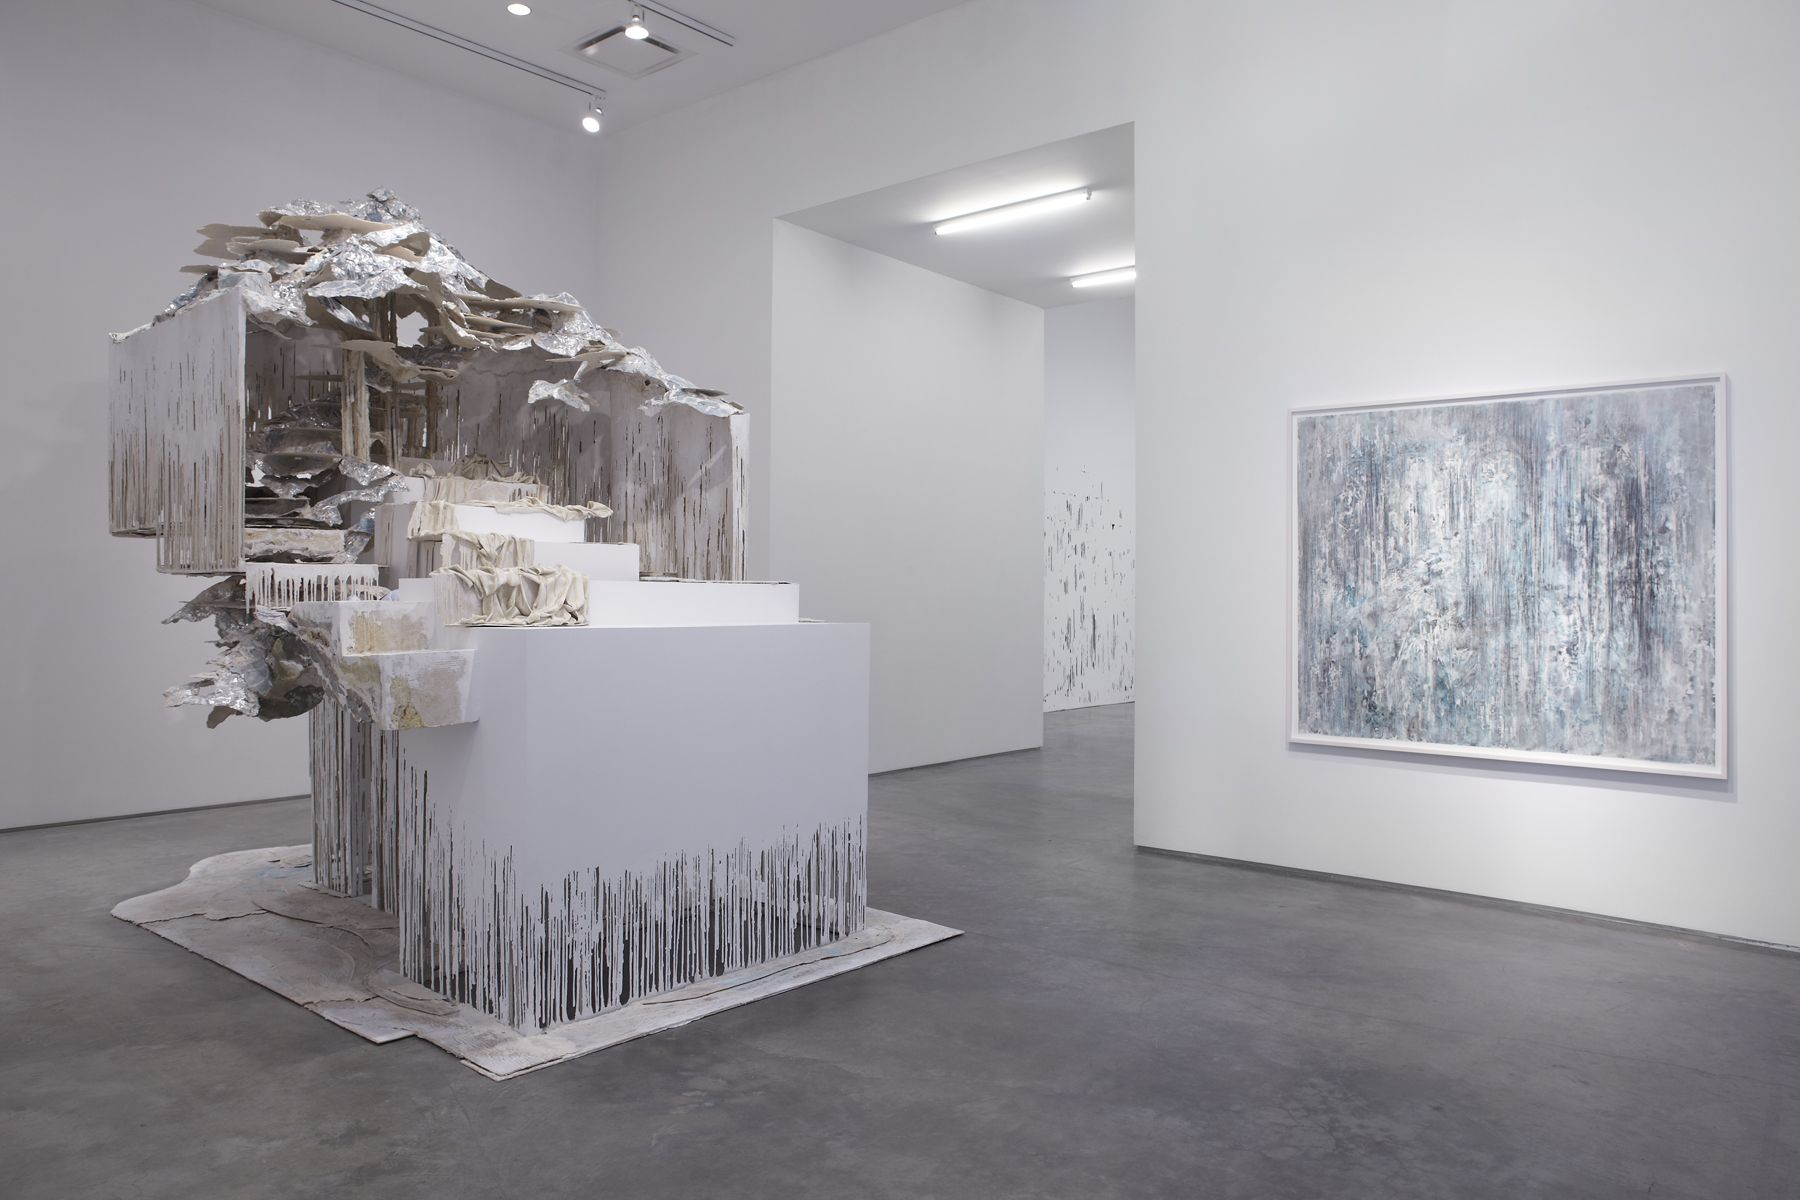 The Vanishing Point (Installation view), Marianne Boesky Gallery, 2012